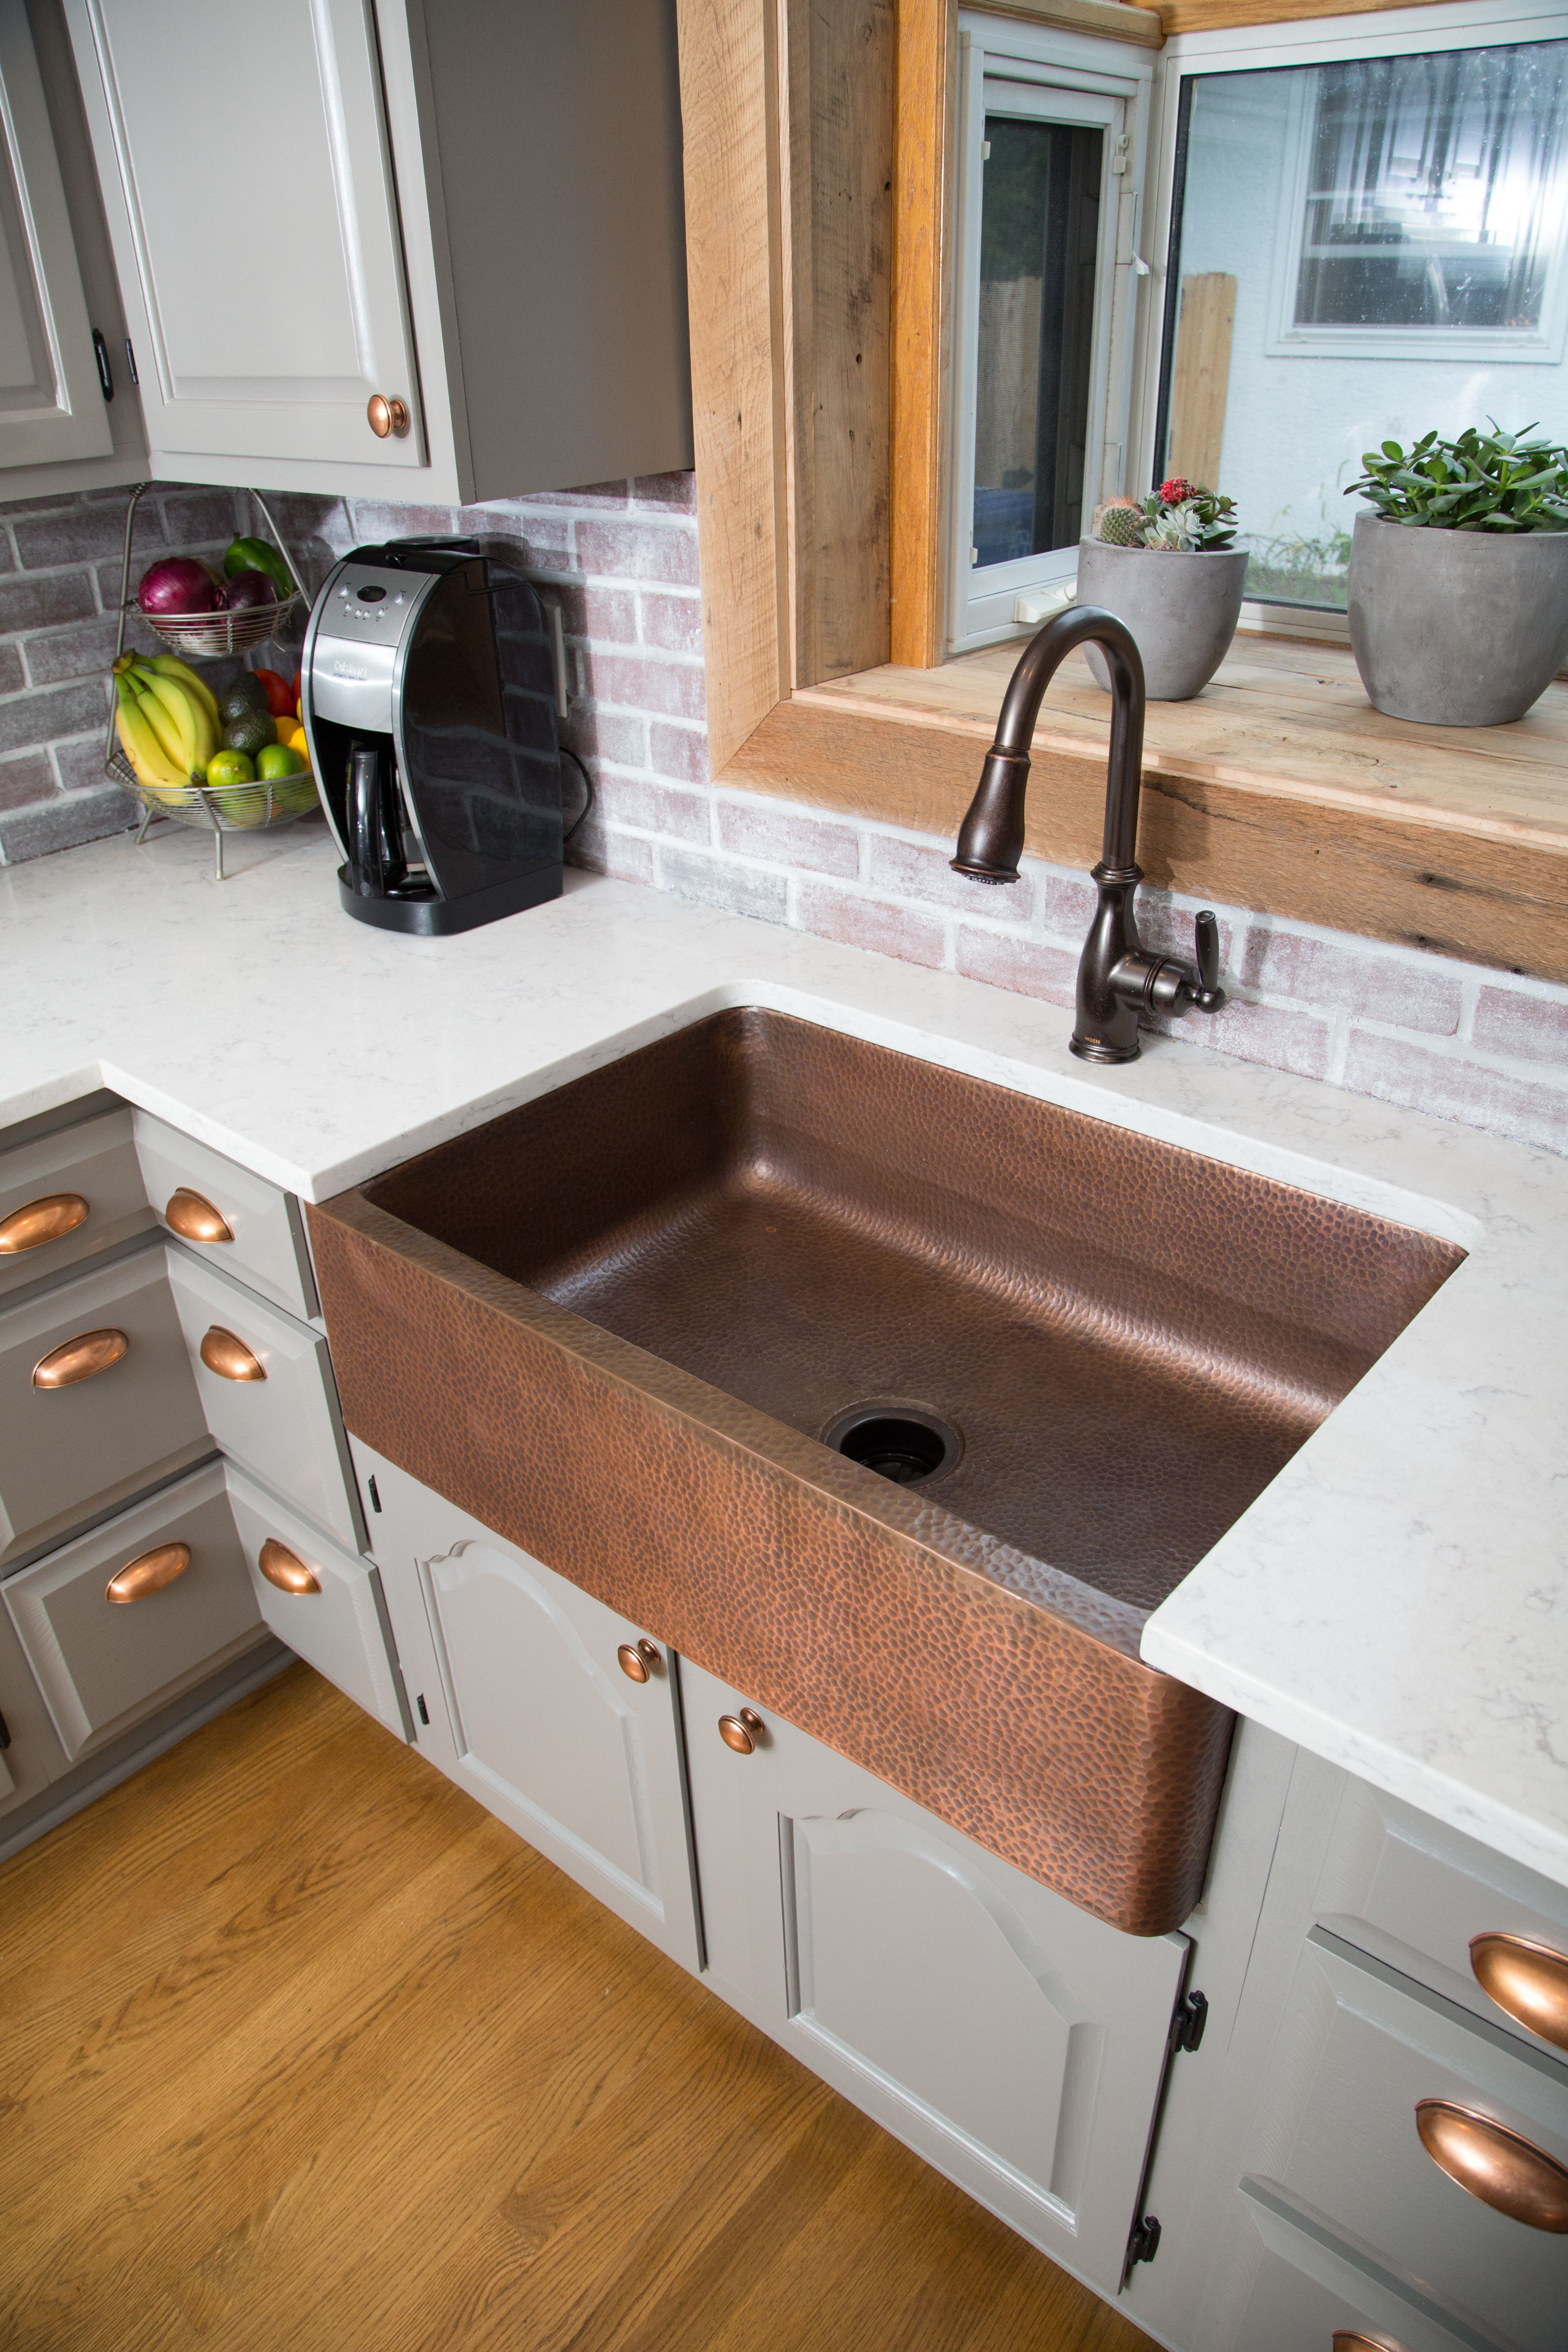 20 Amazing Sink Design Ideas For Your Comfortable Kitchen In 2020